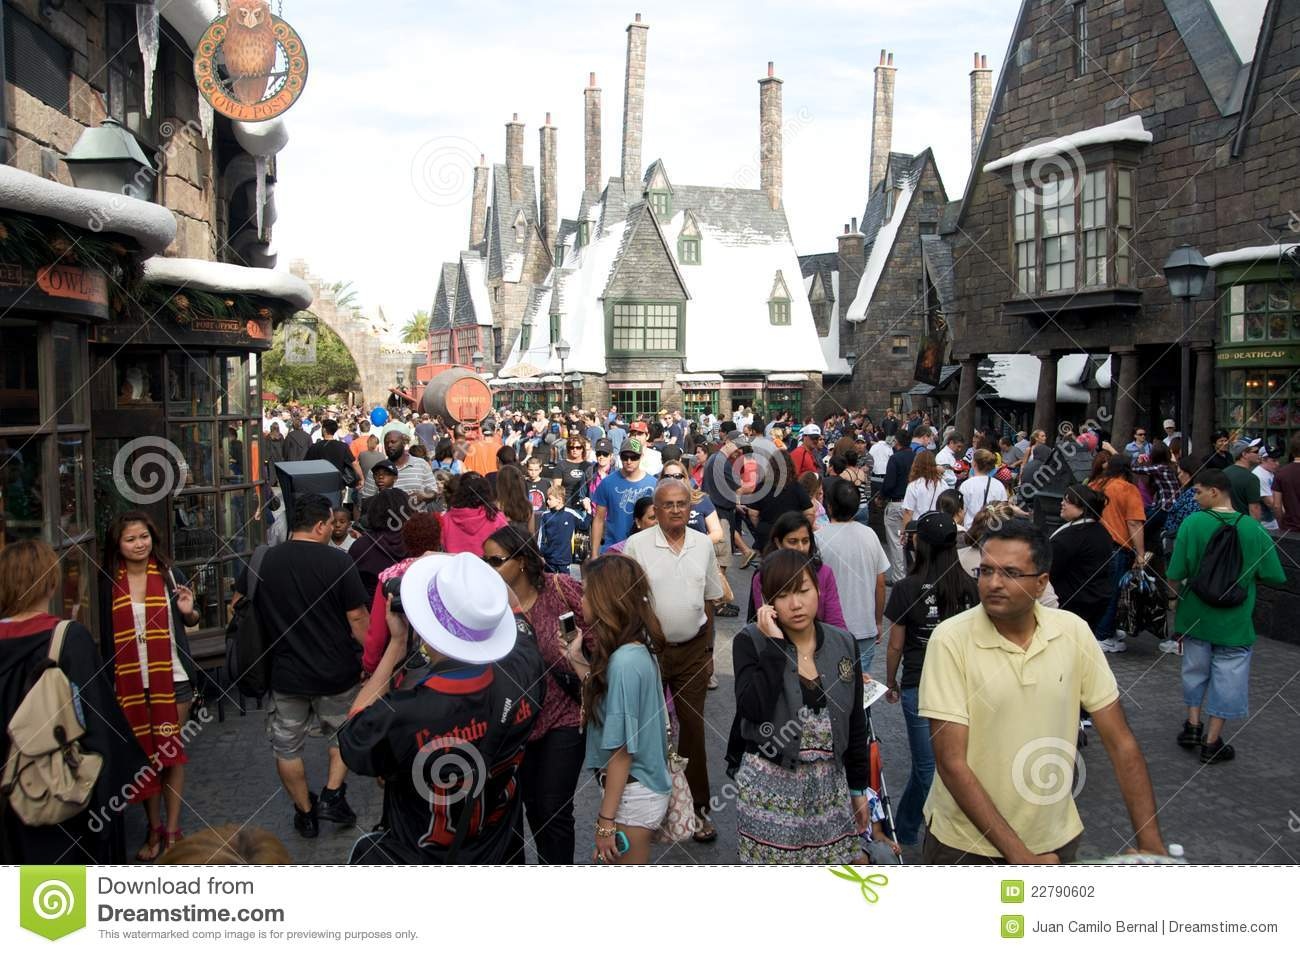 Harry Potter area at Universal Studios Orlando